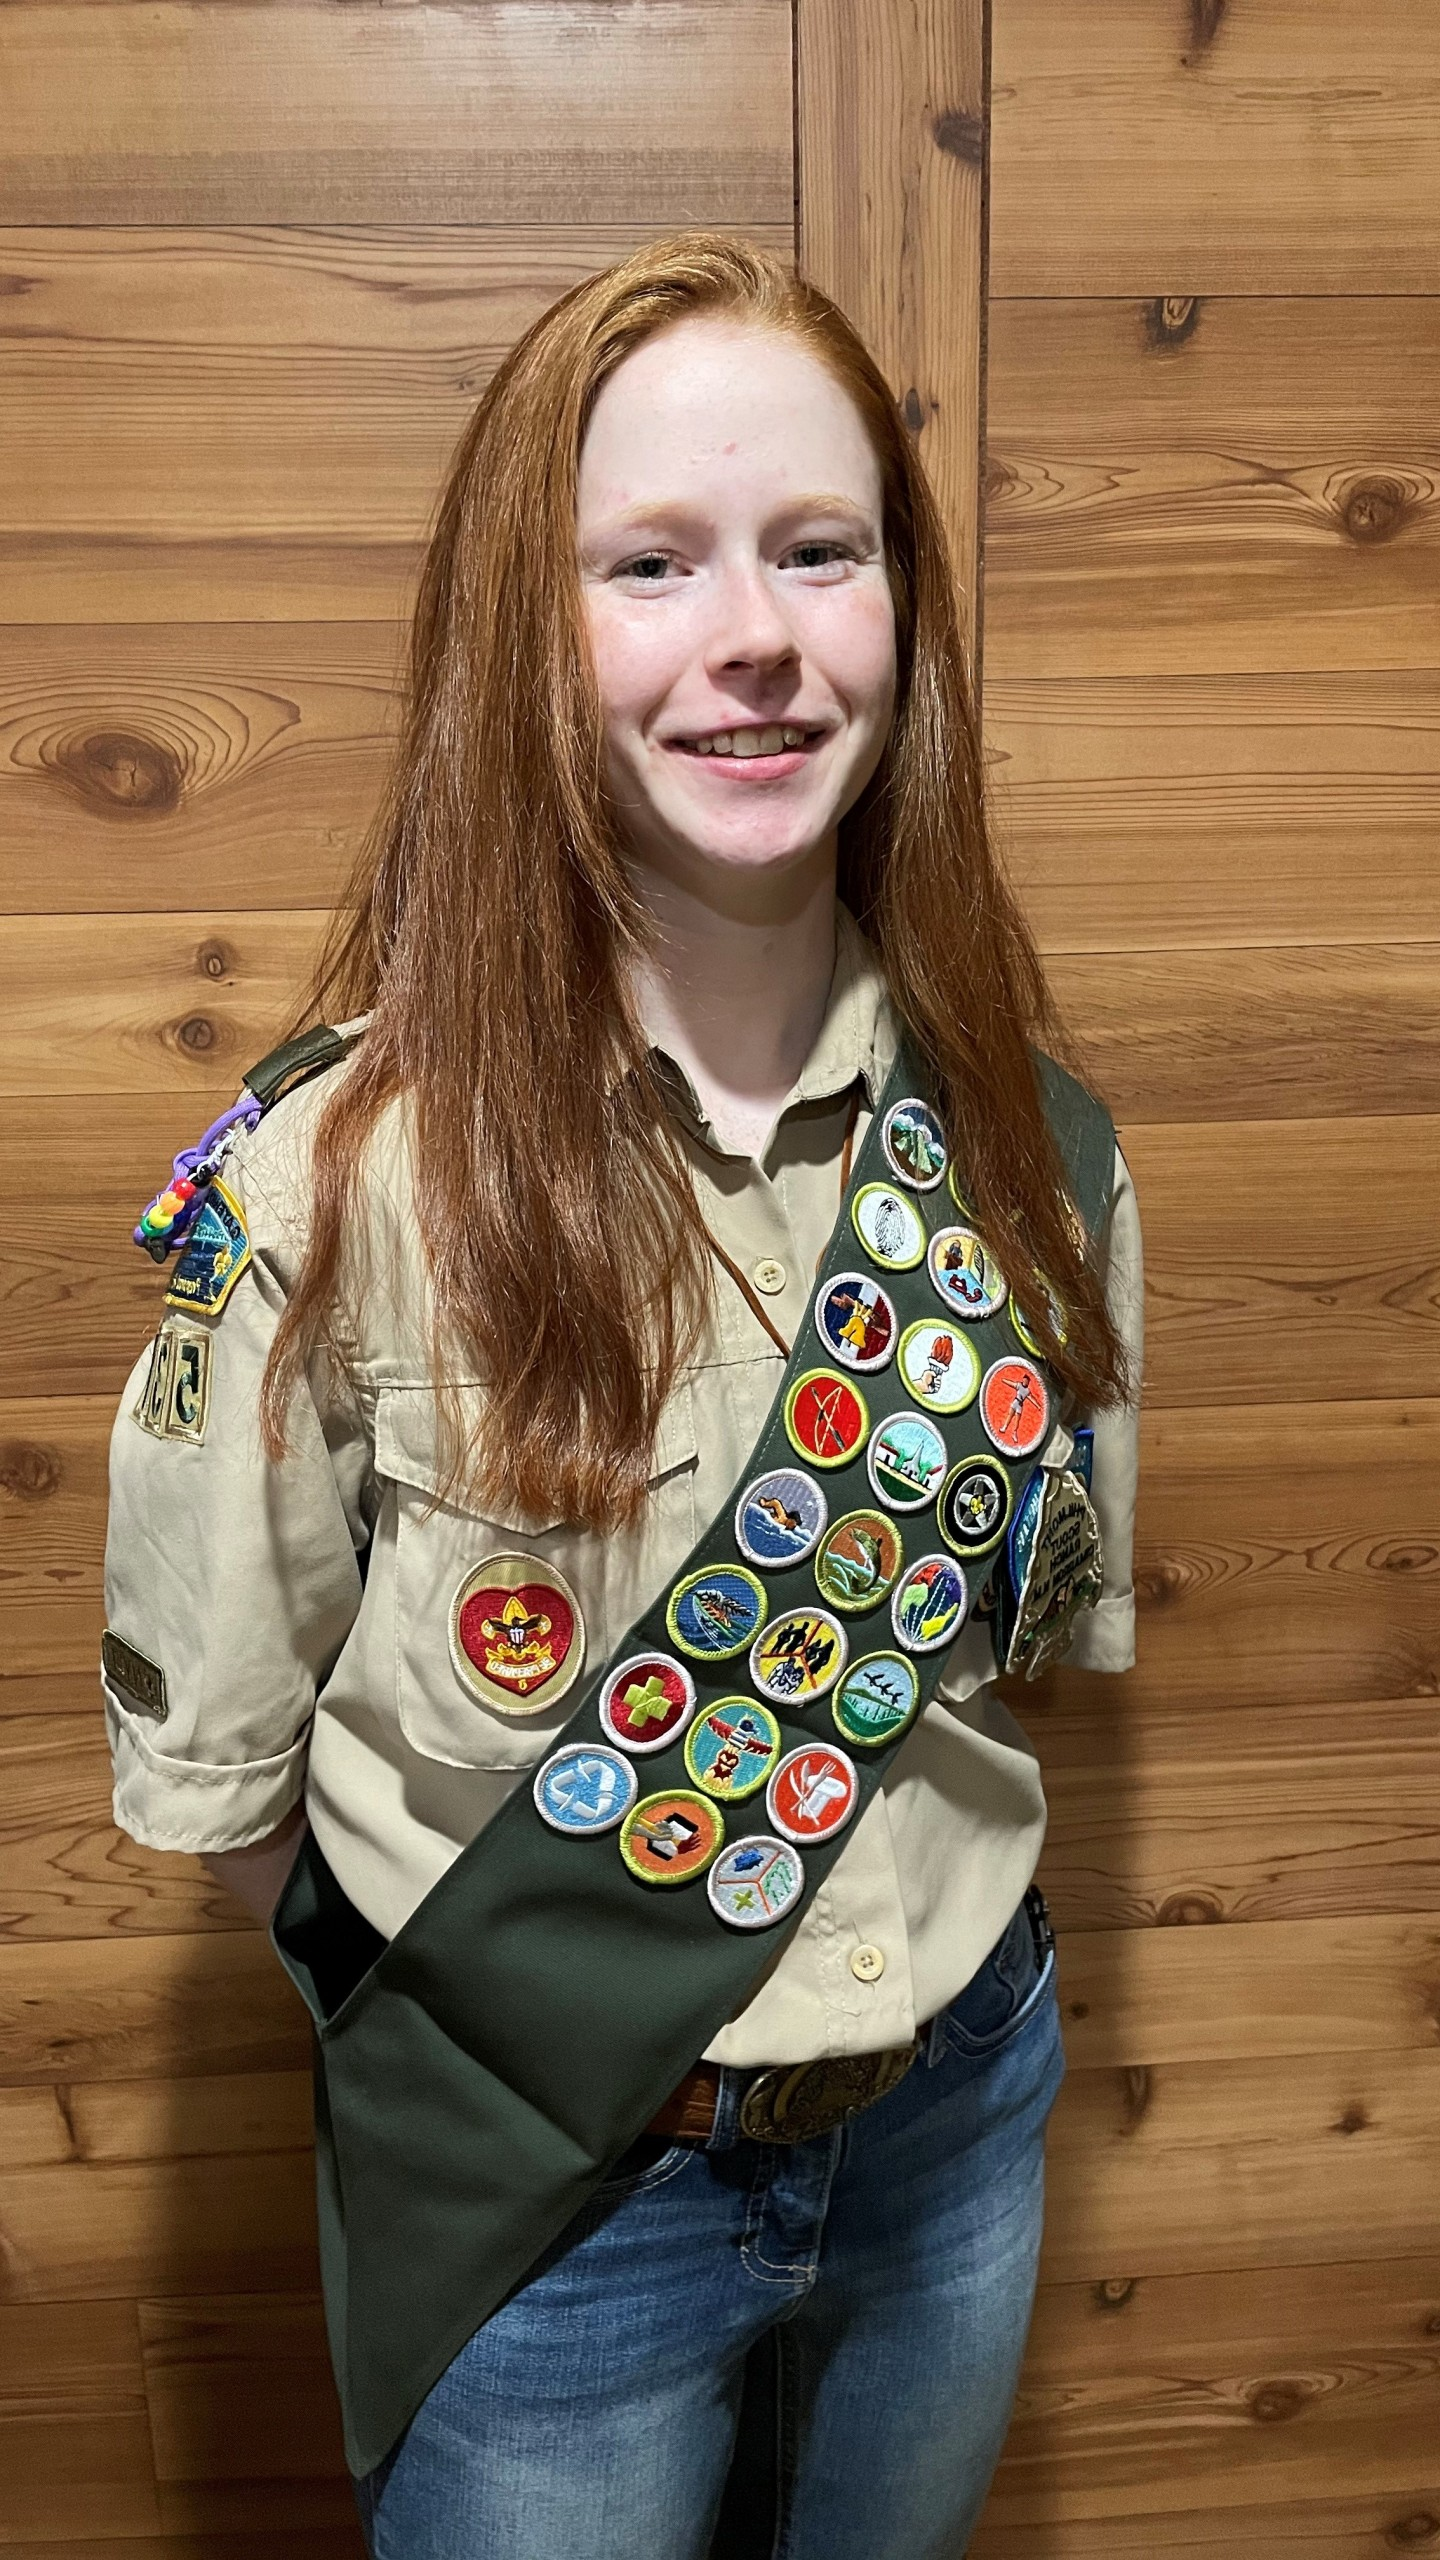 Houston (MN) Teen Set to Soar as One of the Nation's First Female Eagle Scouts